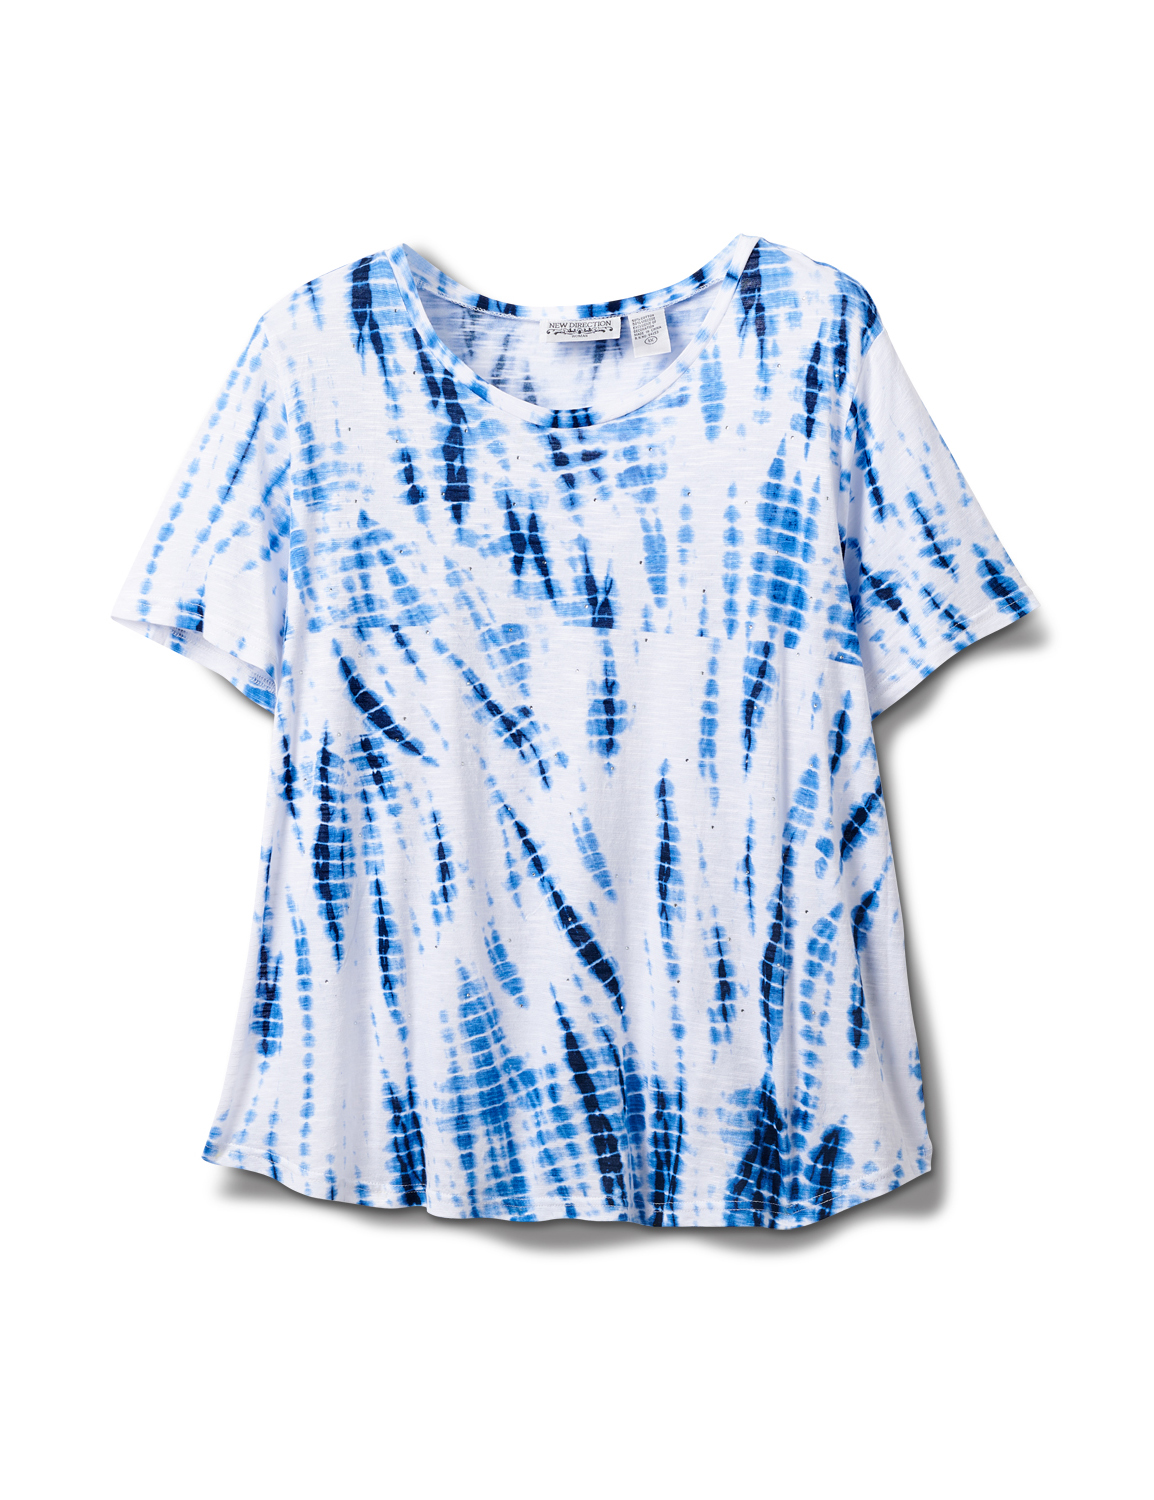 Embellished Tie Dye Knit Top -Blue/White - Front